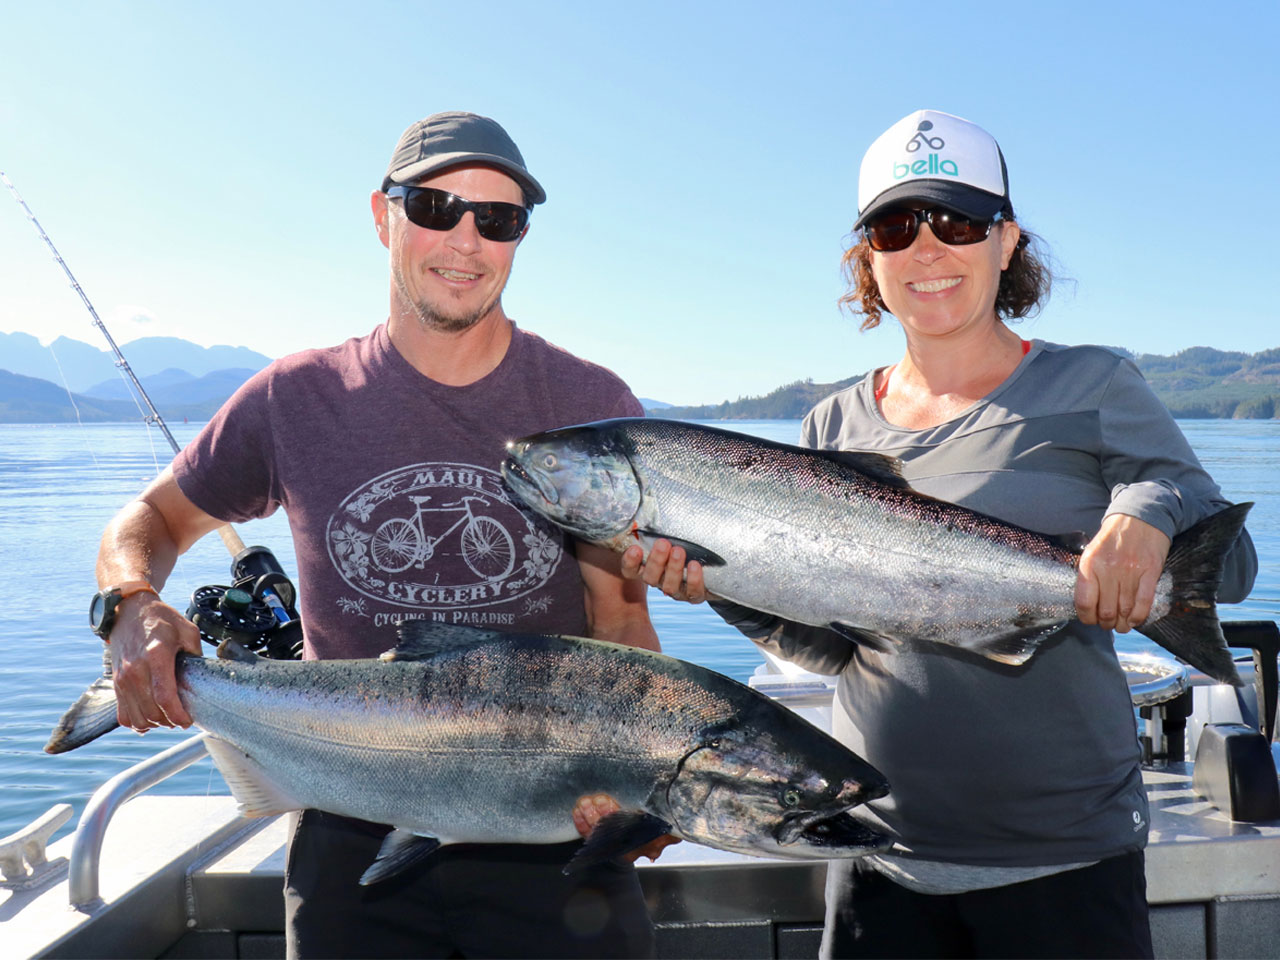 Campbell River Salmon sport fishing specialists